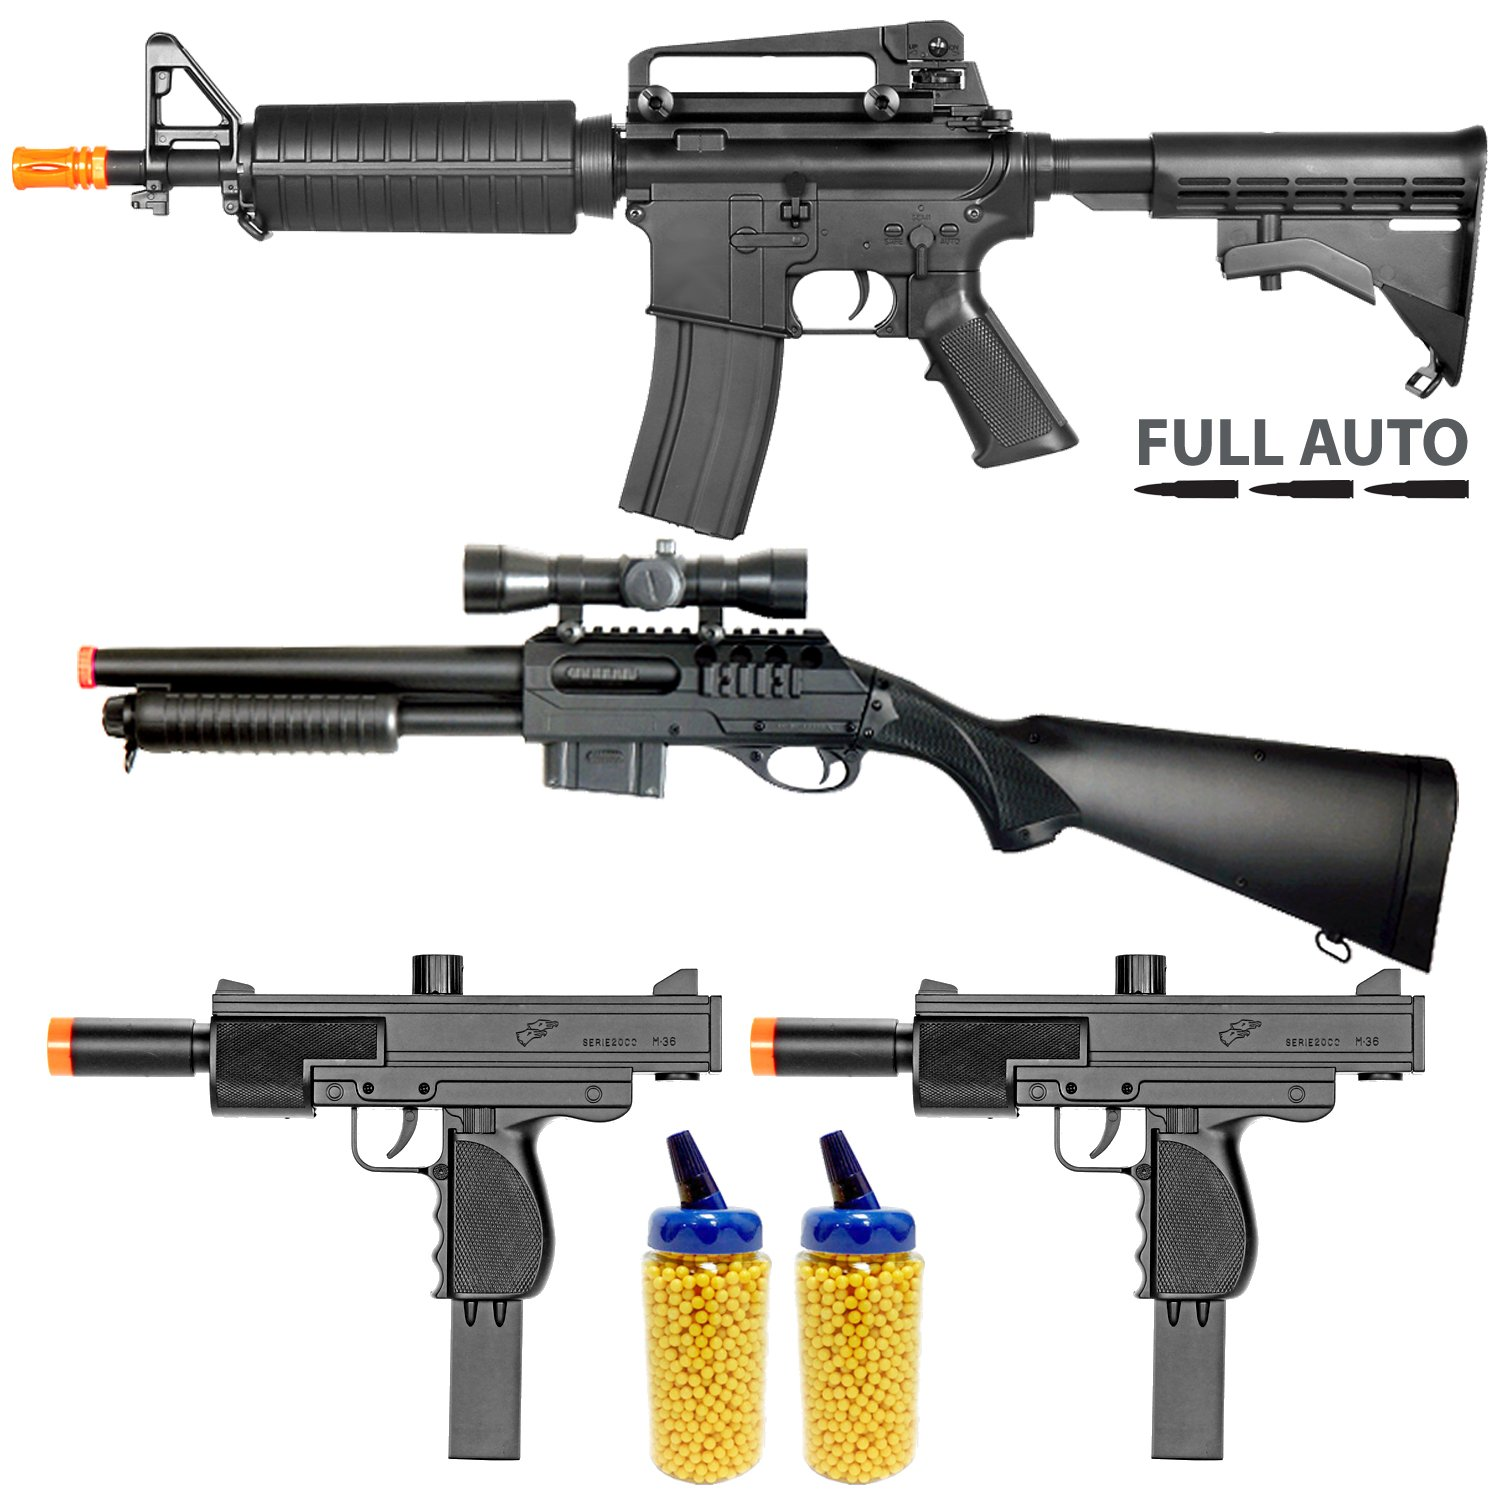 BBTac Airsoft Gun Package - Police Entry Team Collection of 4 Airsoft Guns - Full Auto AEG Airsoft Electric Rifle, Shotgun, SMG and Pistol, 4000 BB Pellets, Great for Starter Pack Game Play by BBTac (Image #1)